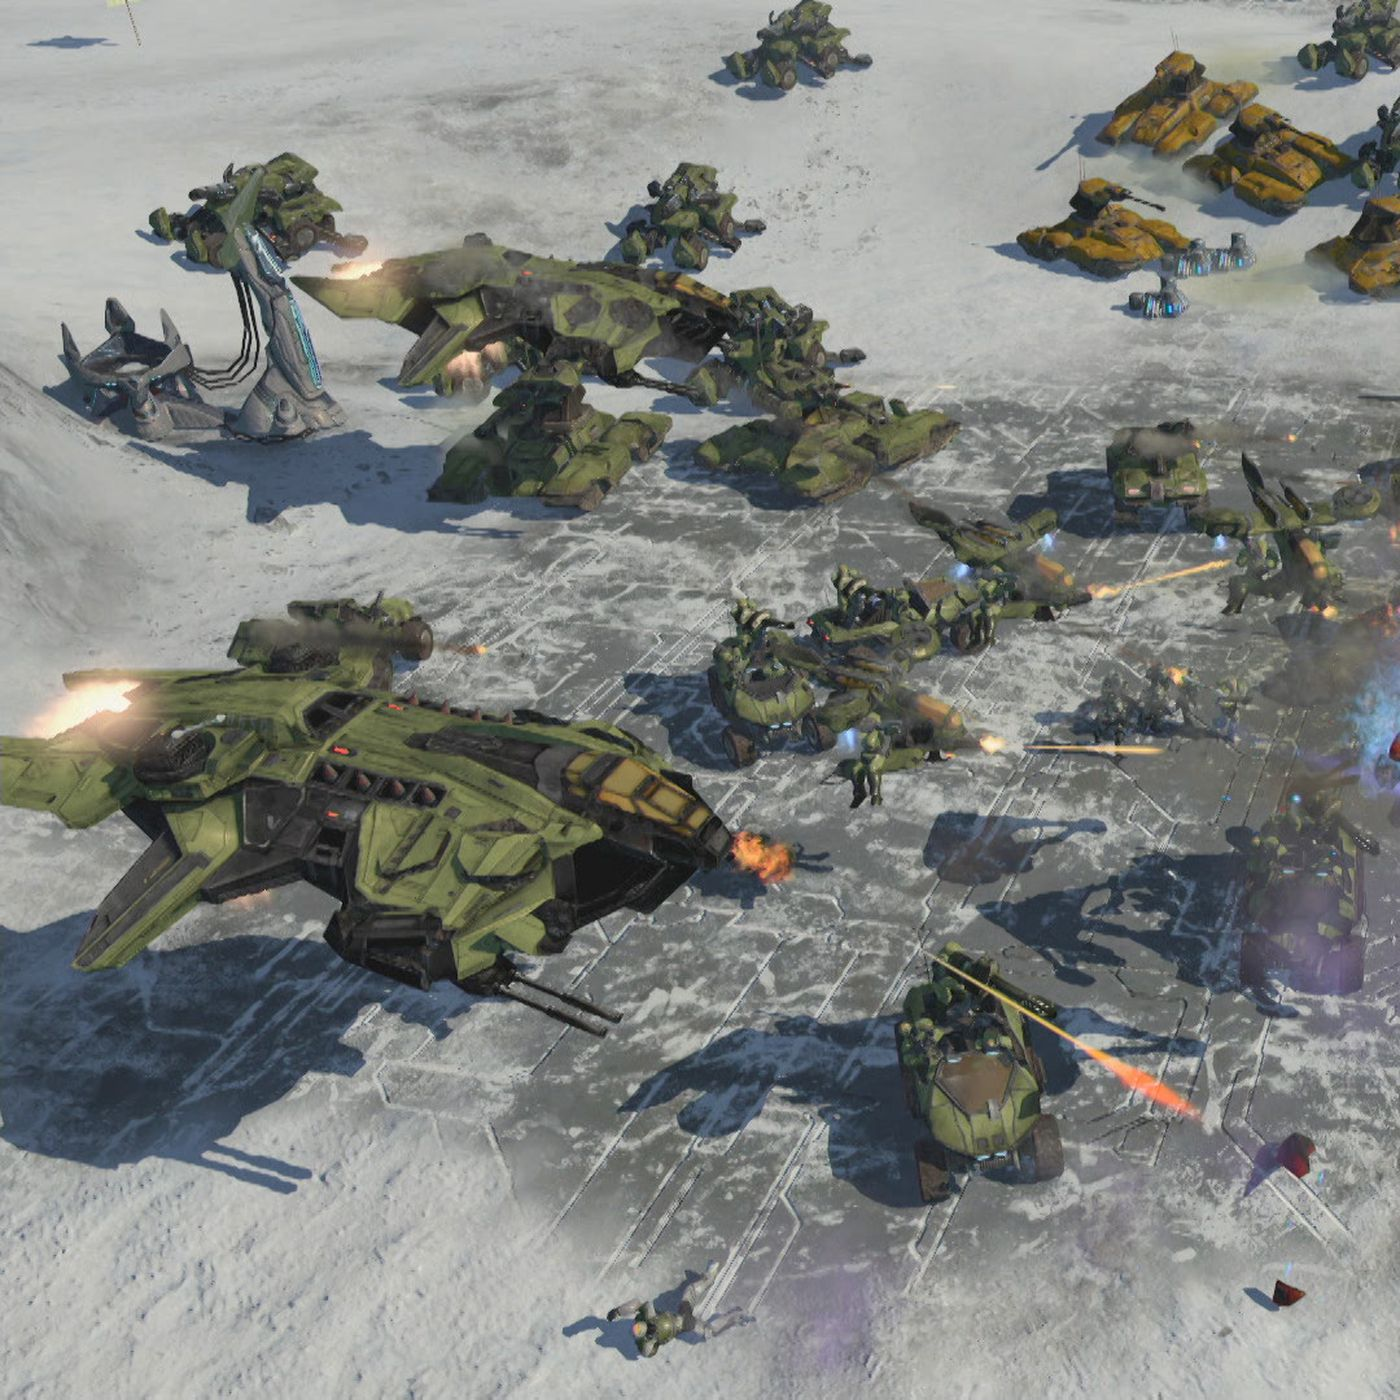 Anyone can buy Halo Wars: Definitive Edition this week - Polygon